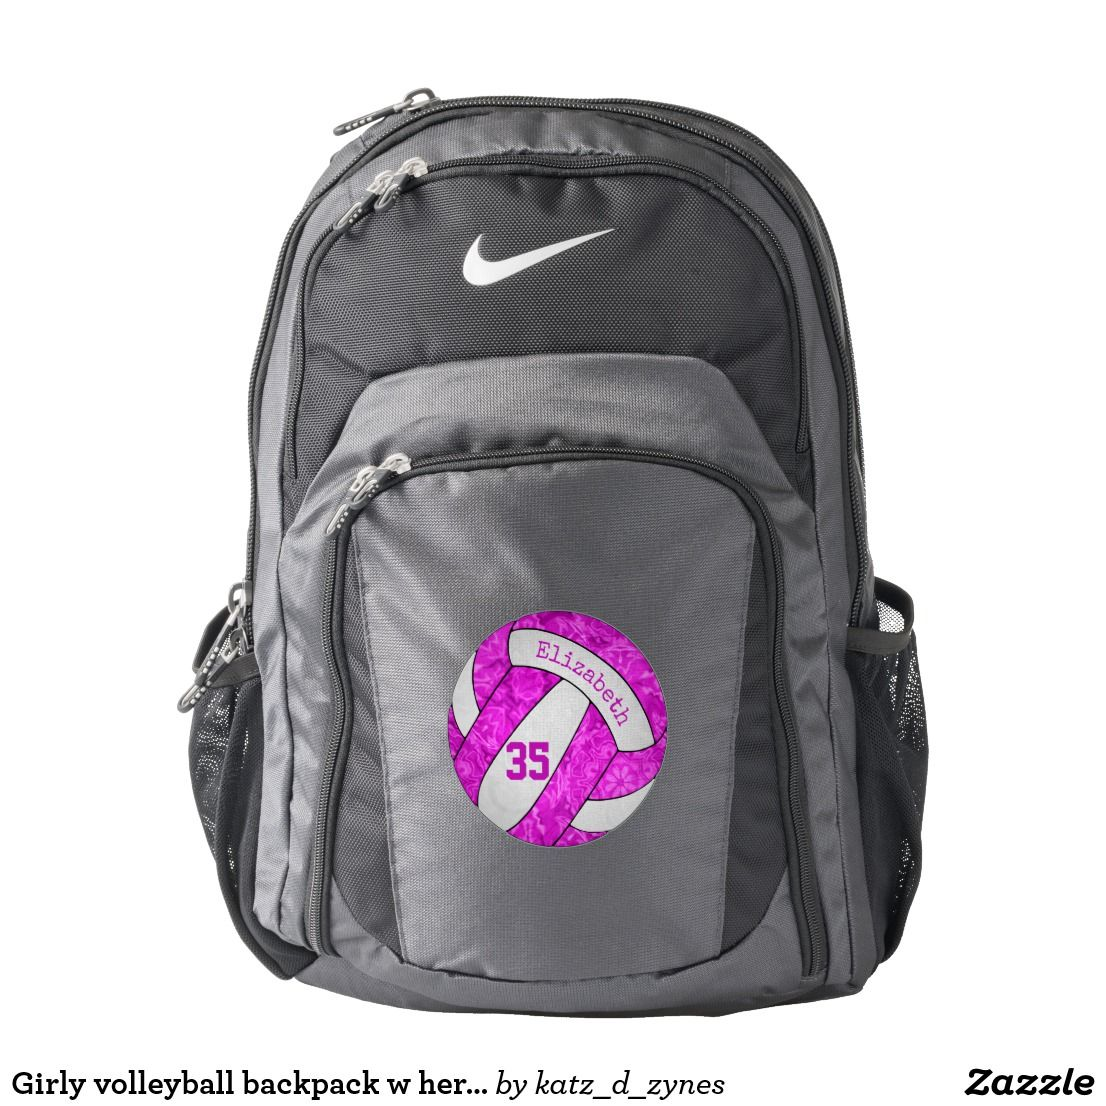 Girly Volleyball Backpack W Her Name Jersey Number Zazzle Com With Images Nike Backpack Stylish Backpacks Backpacks